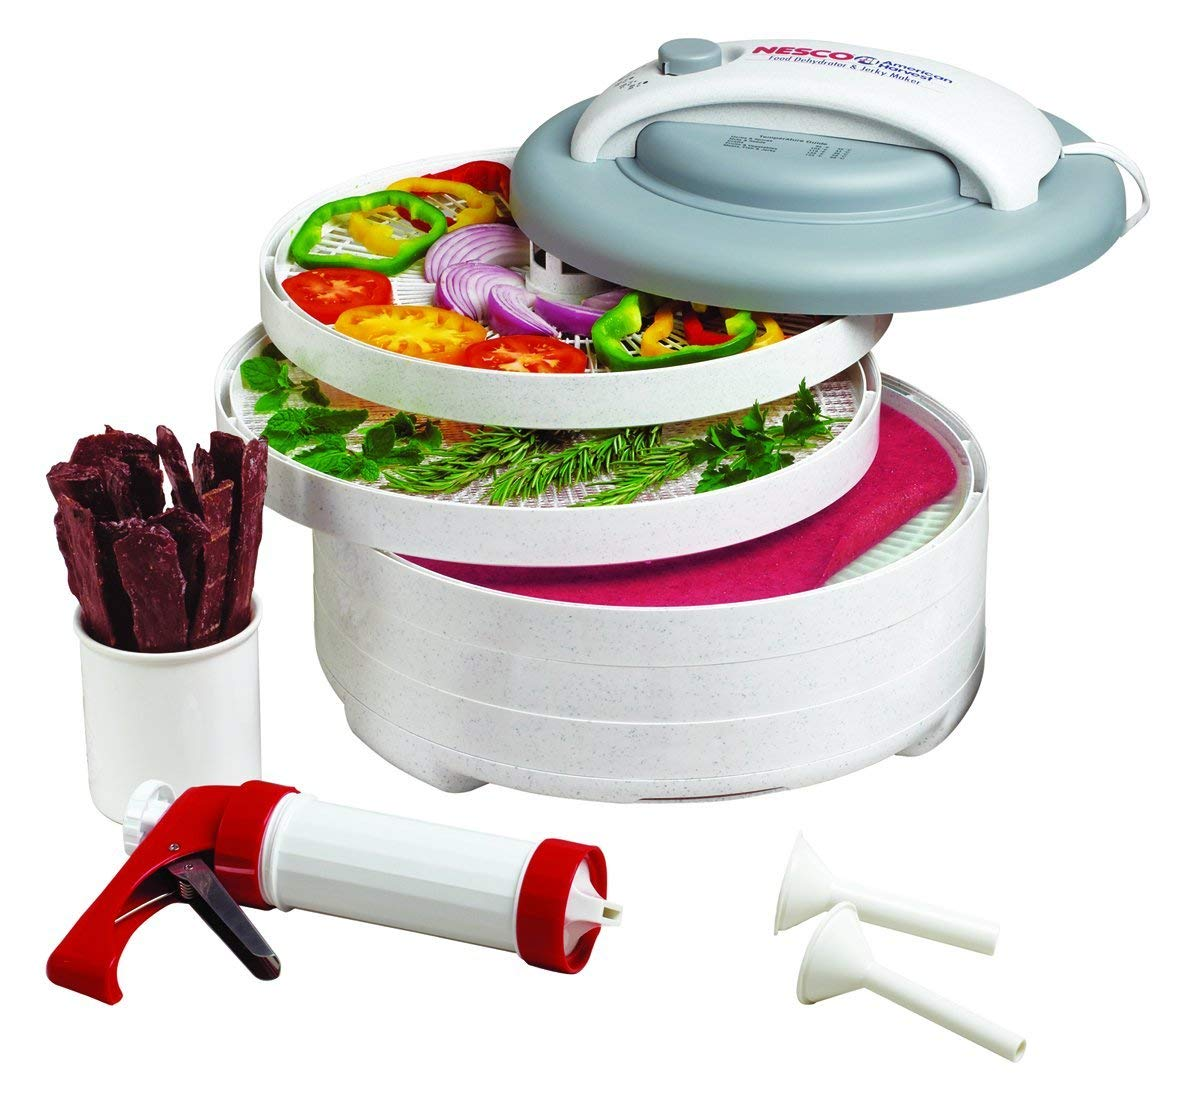 NESCO Plastic Dishwasher Safe All-In-One White Snackmaster with 5 Trays & Jerky Gun, 4 Piece